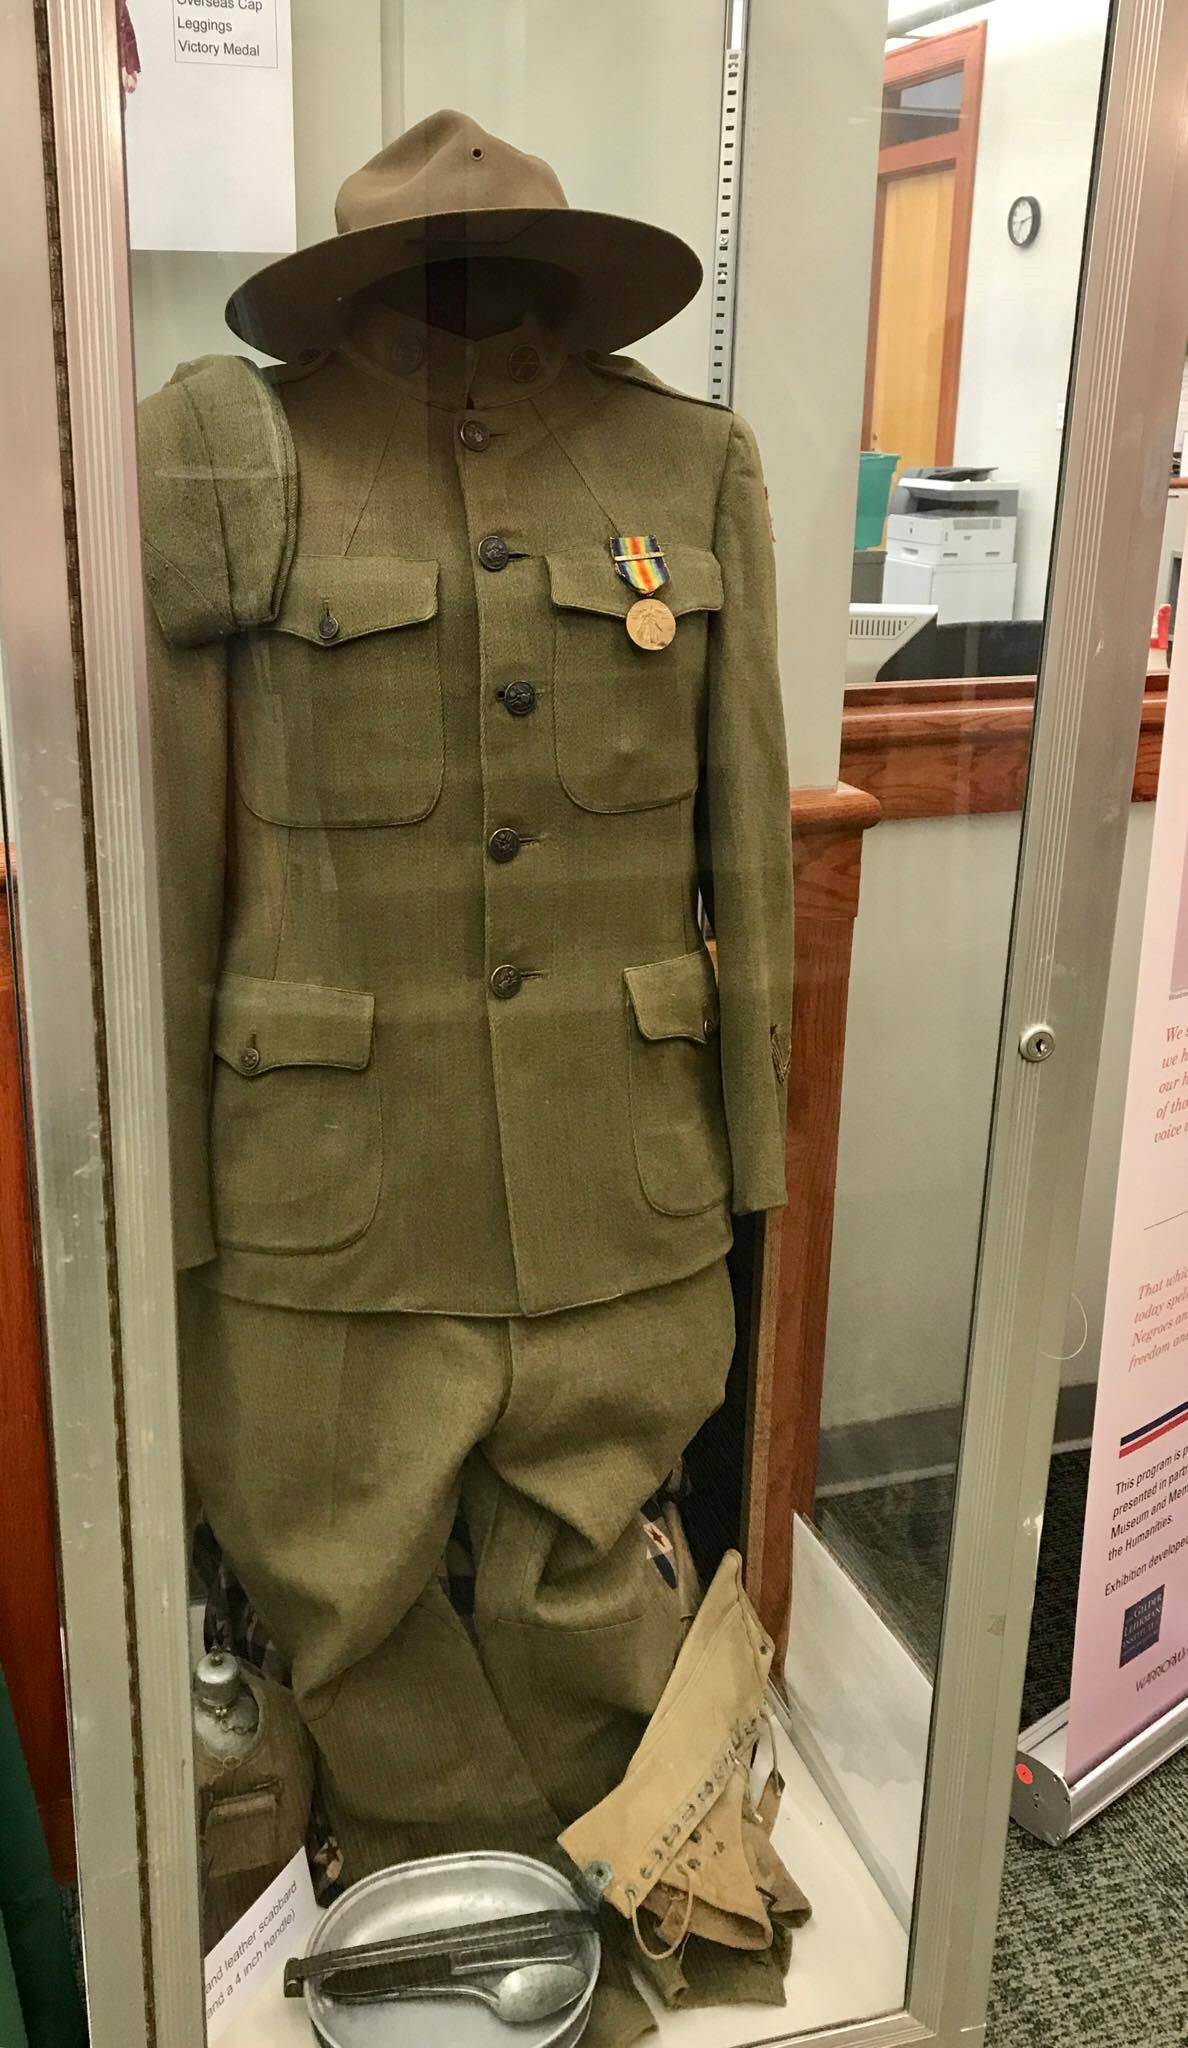 Soldier's uniform